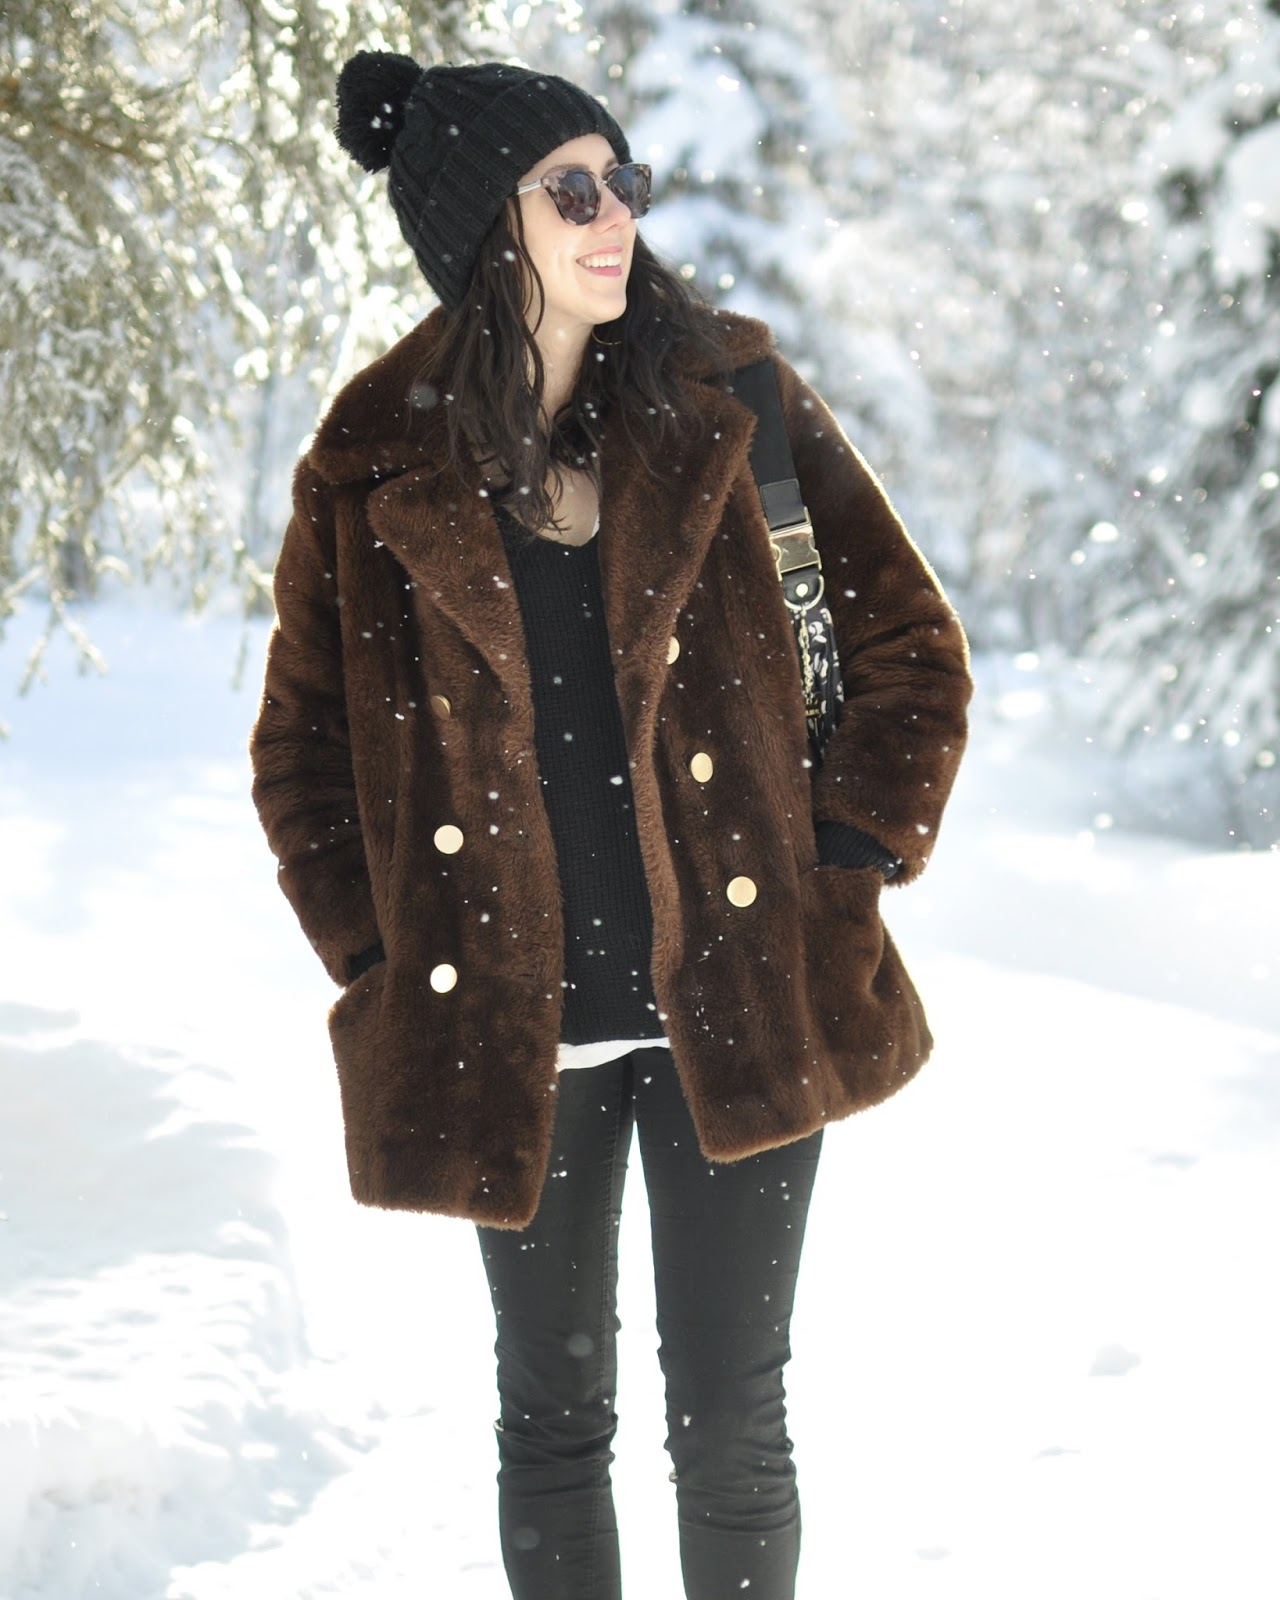 Vintage thrifted Alaska style fashion outfit